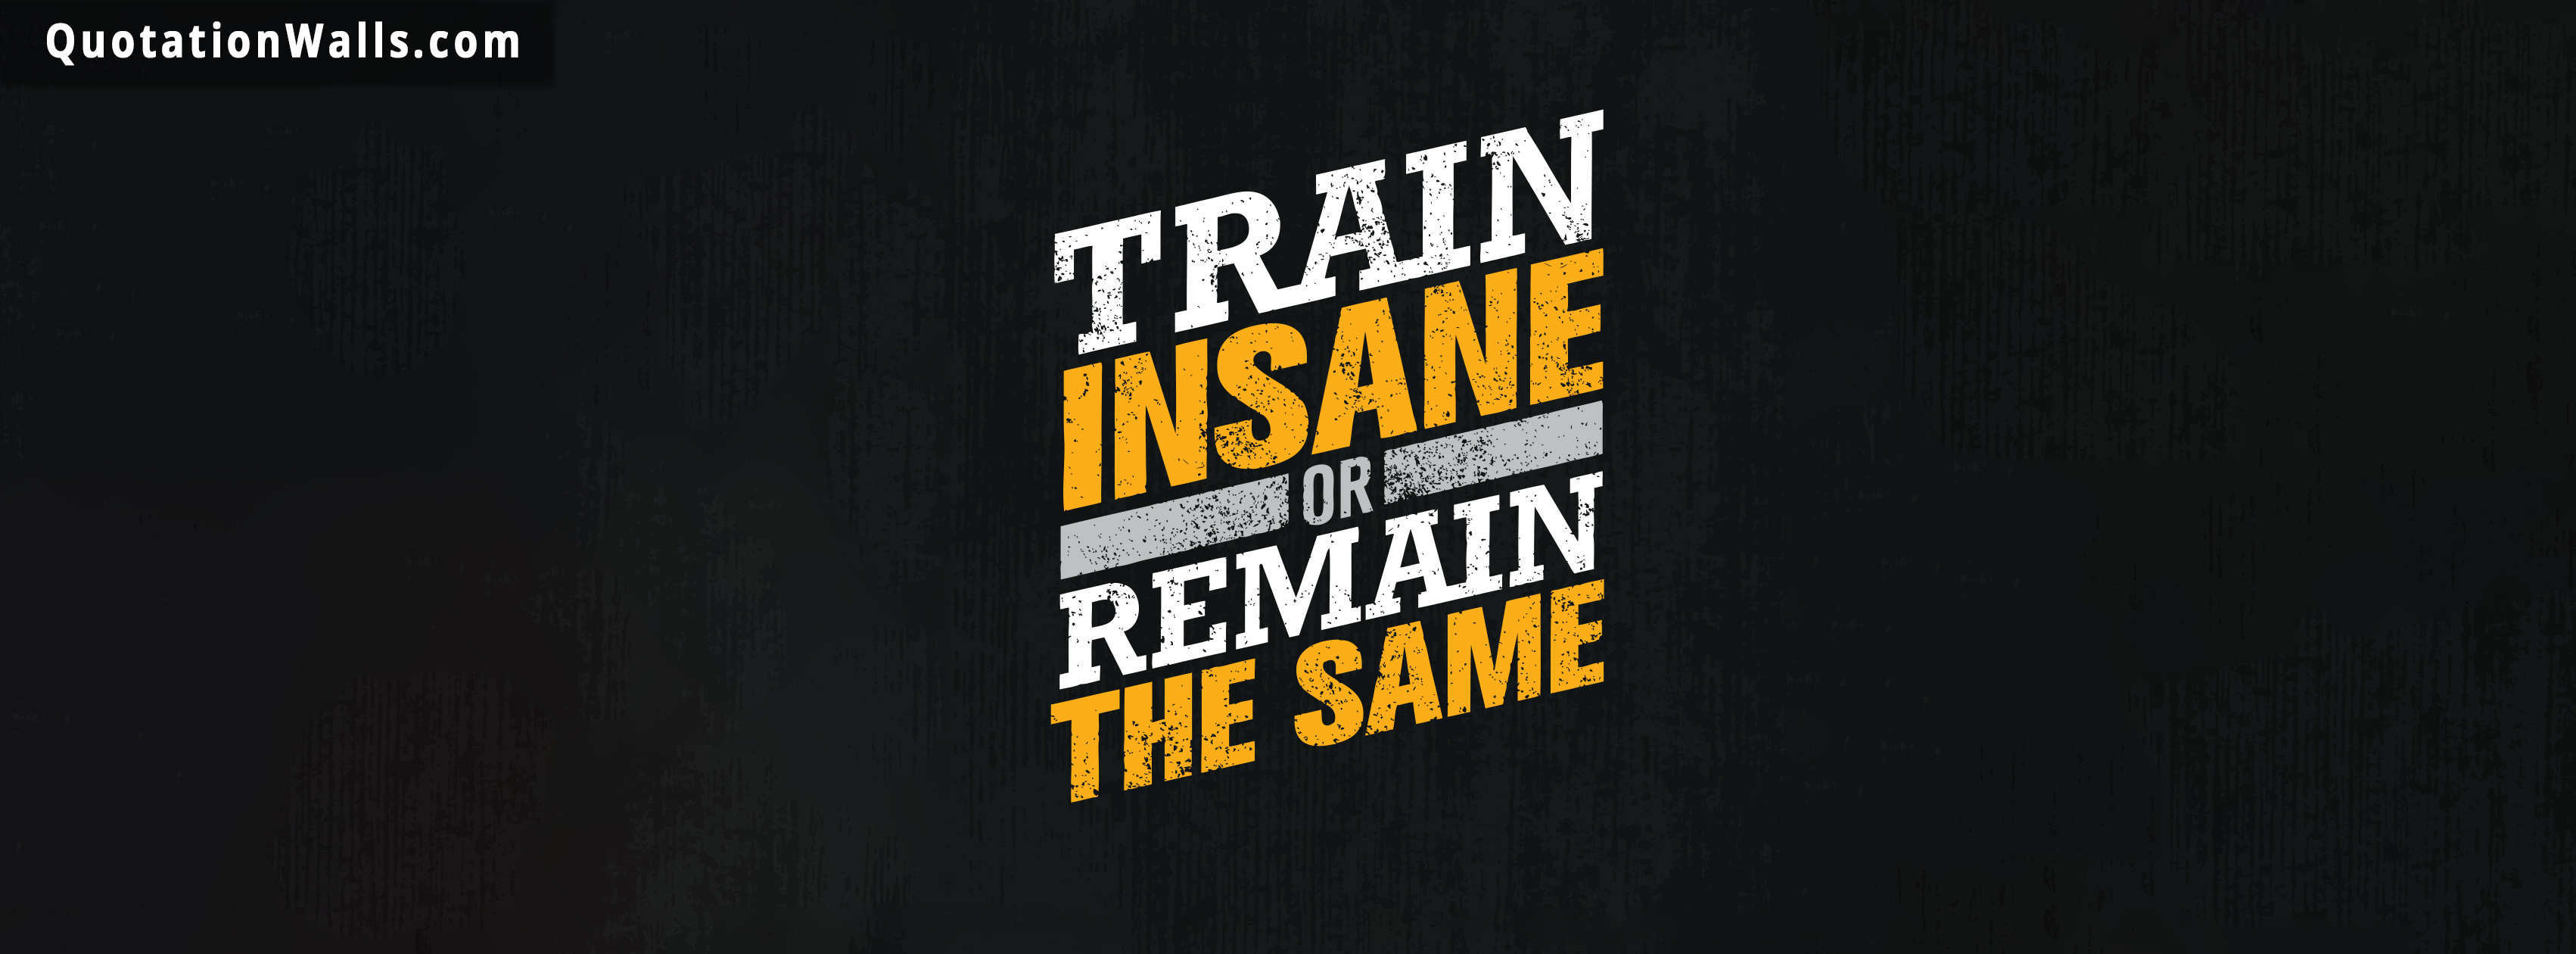 Facebook Cover Photos With Quotes Train Insane Motivational Facebook Cover Photo  Quotationwalls